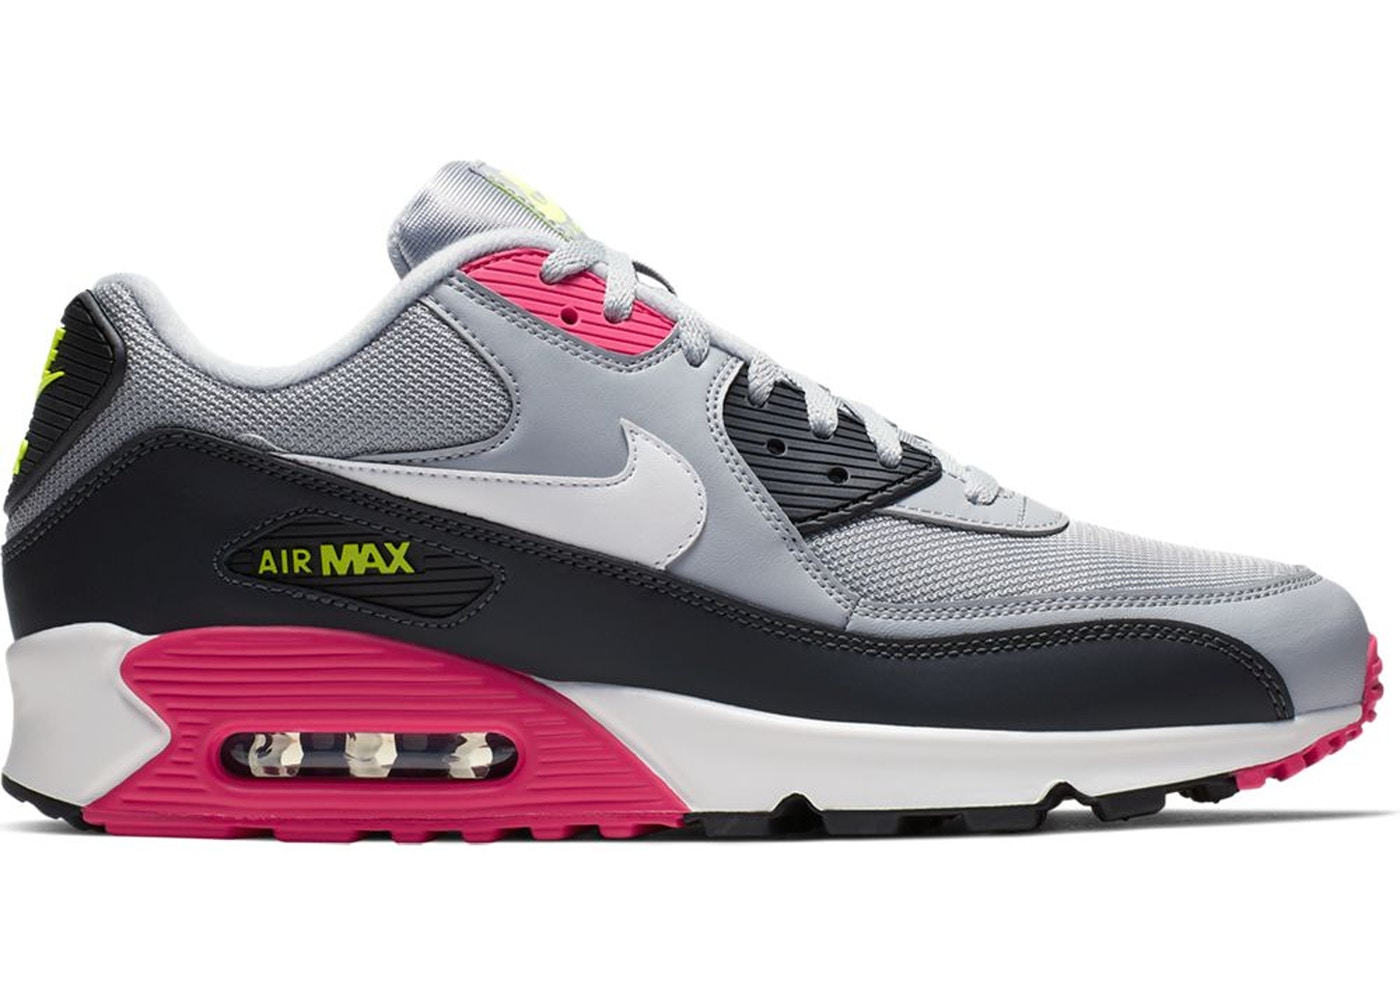 hot sale online a7bbb 01219 Buy Nike Air Max 90 Shoes & Deadstock Sneakers